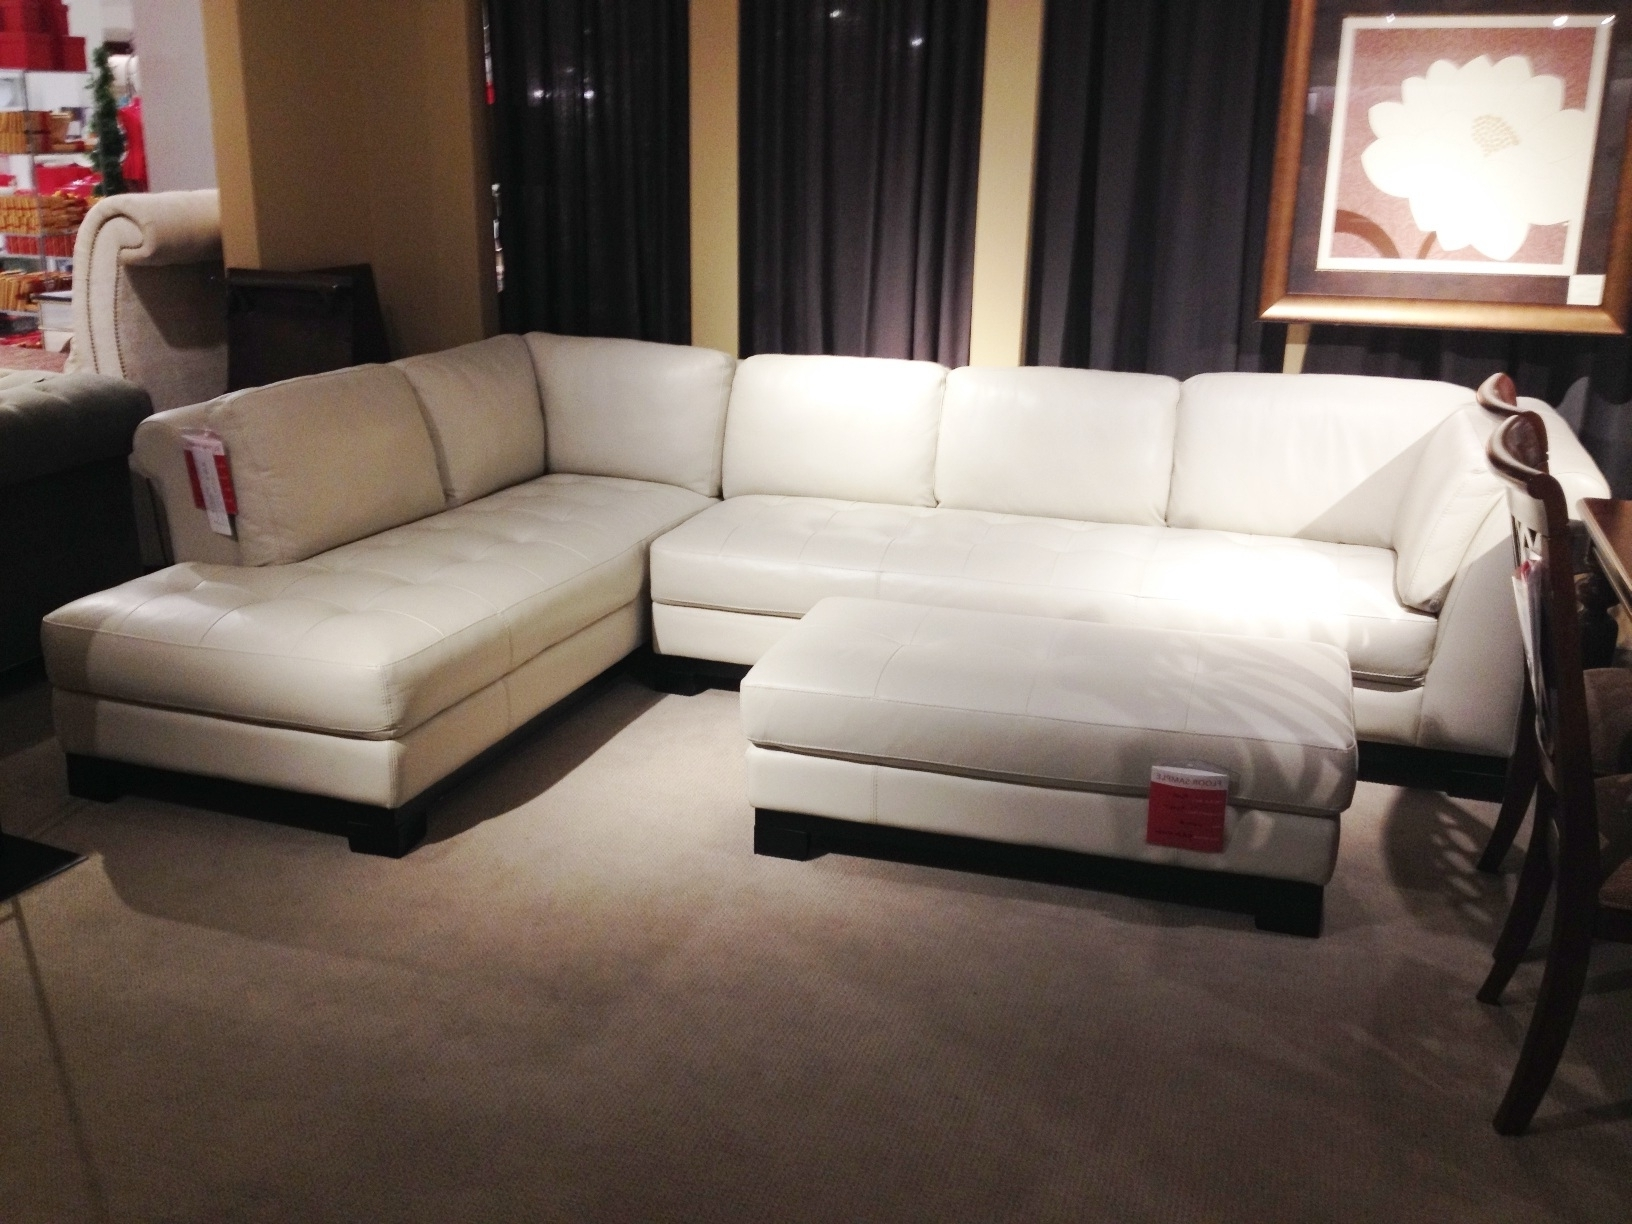 White Leather Sectional Sofa Macy's • Leather Sofa Inside Most Recently Released Macys Sectional Sofas (Gallery 4 of 20)